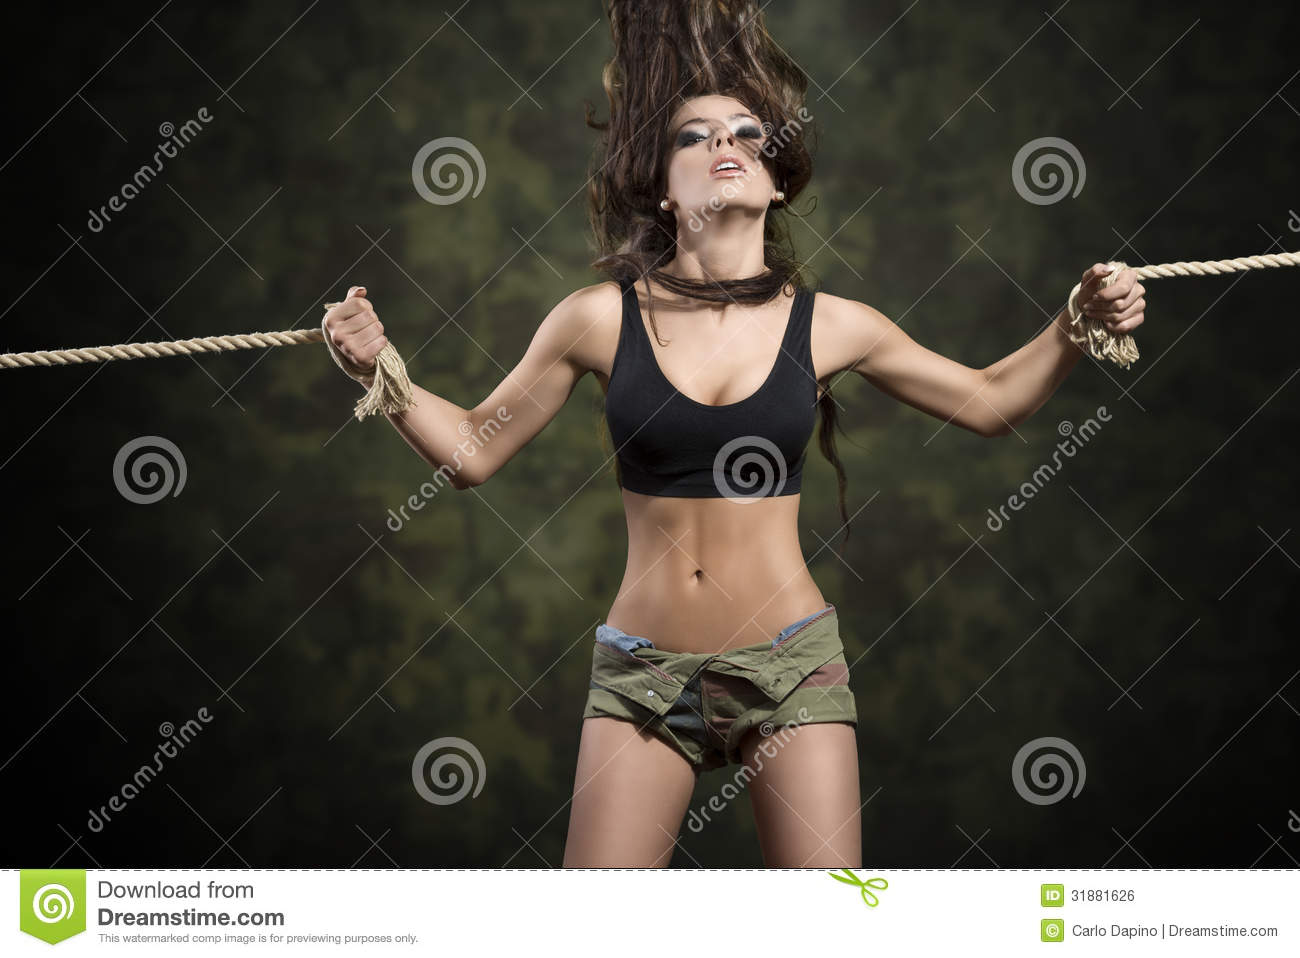 Sexy Brunette Girl Tied By Rope Royalty Free Stock Image -1413